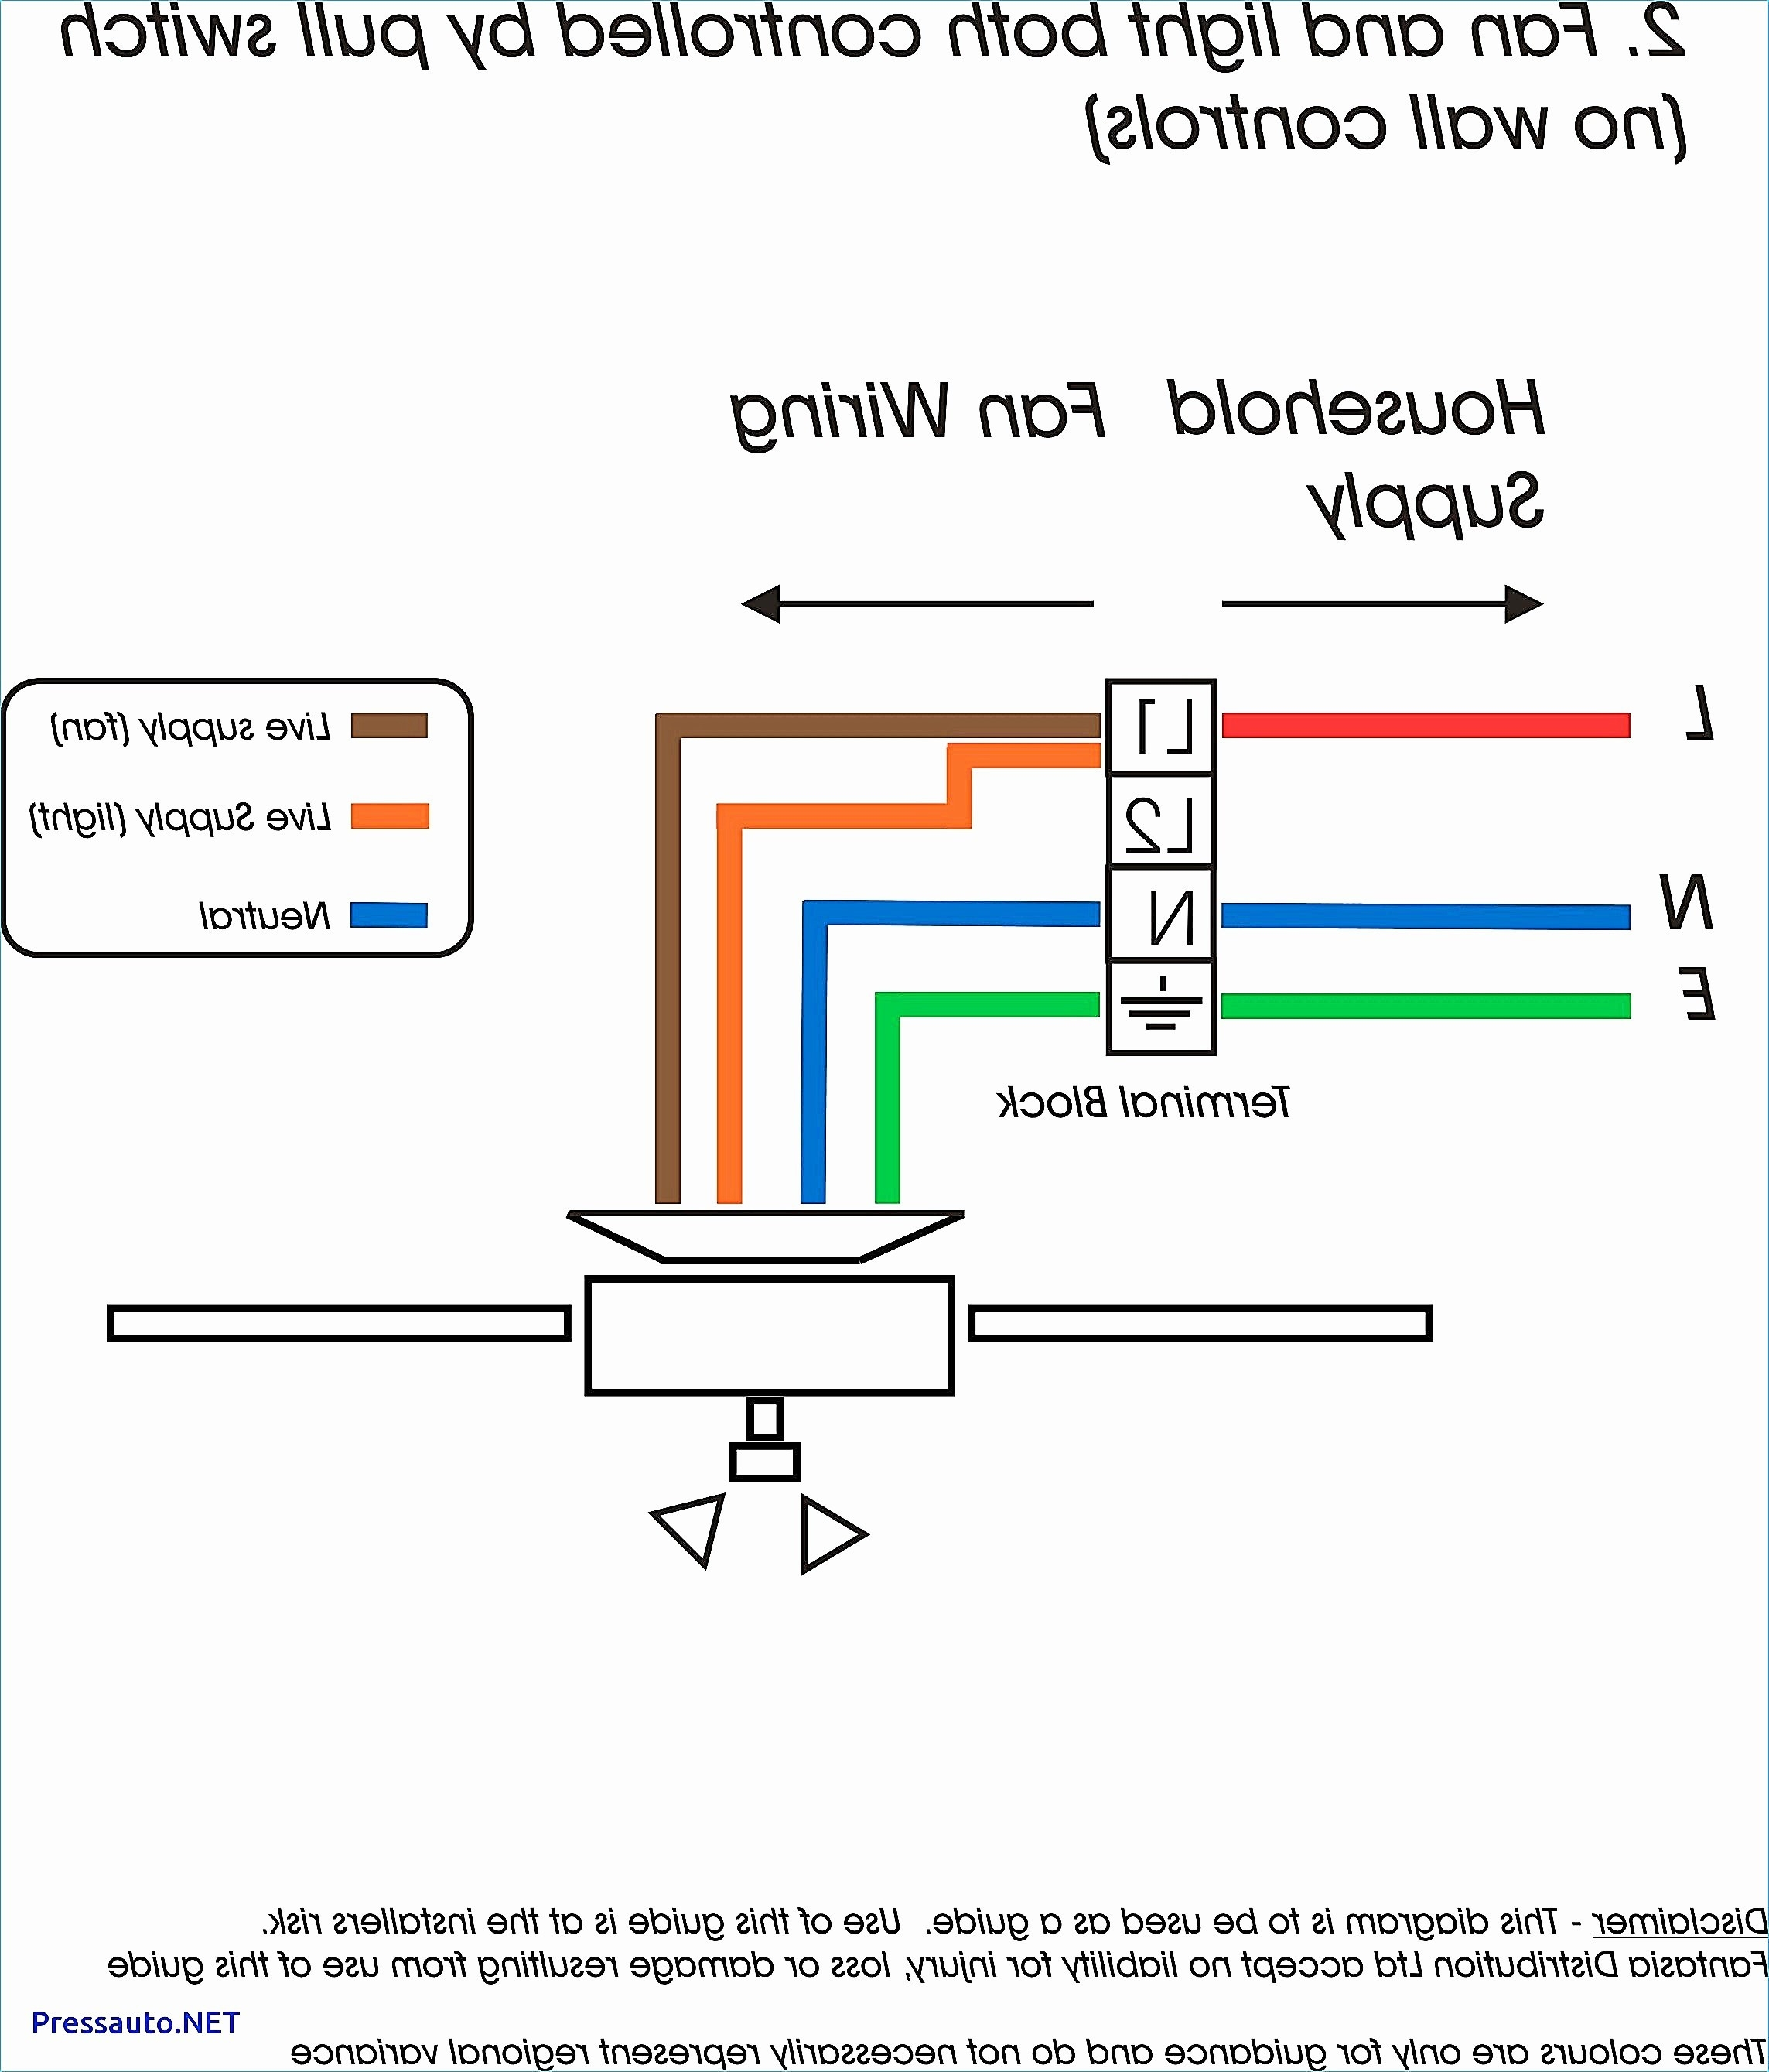 cat5 crossover cable wiring diagram Collection-Wiring Diagram for Cat5 Crossover Cable Best Wiring Diagram for A 7-q